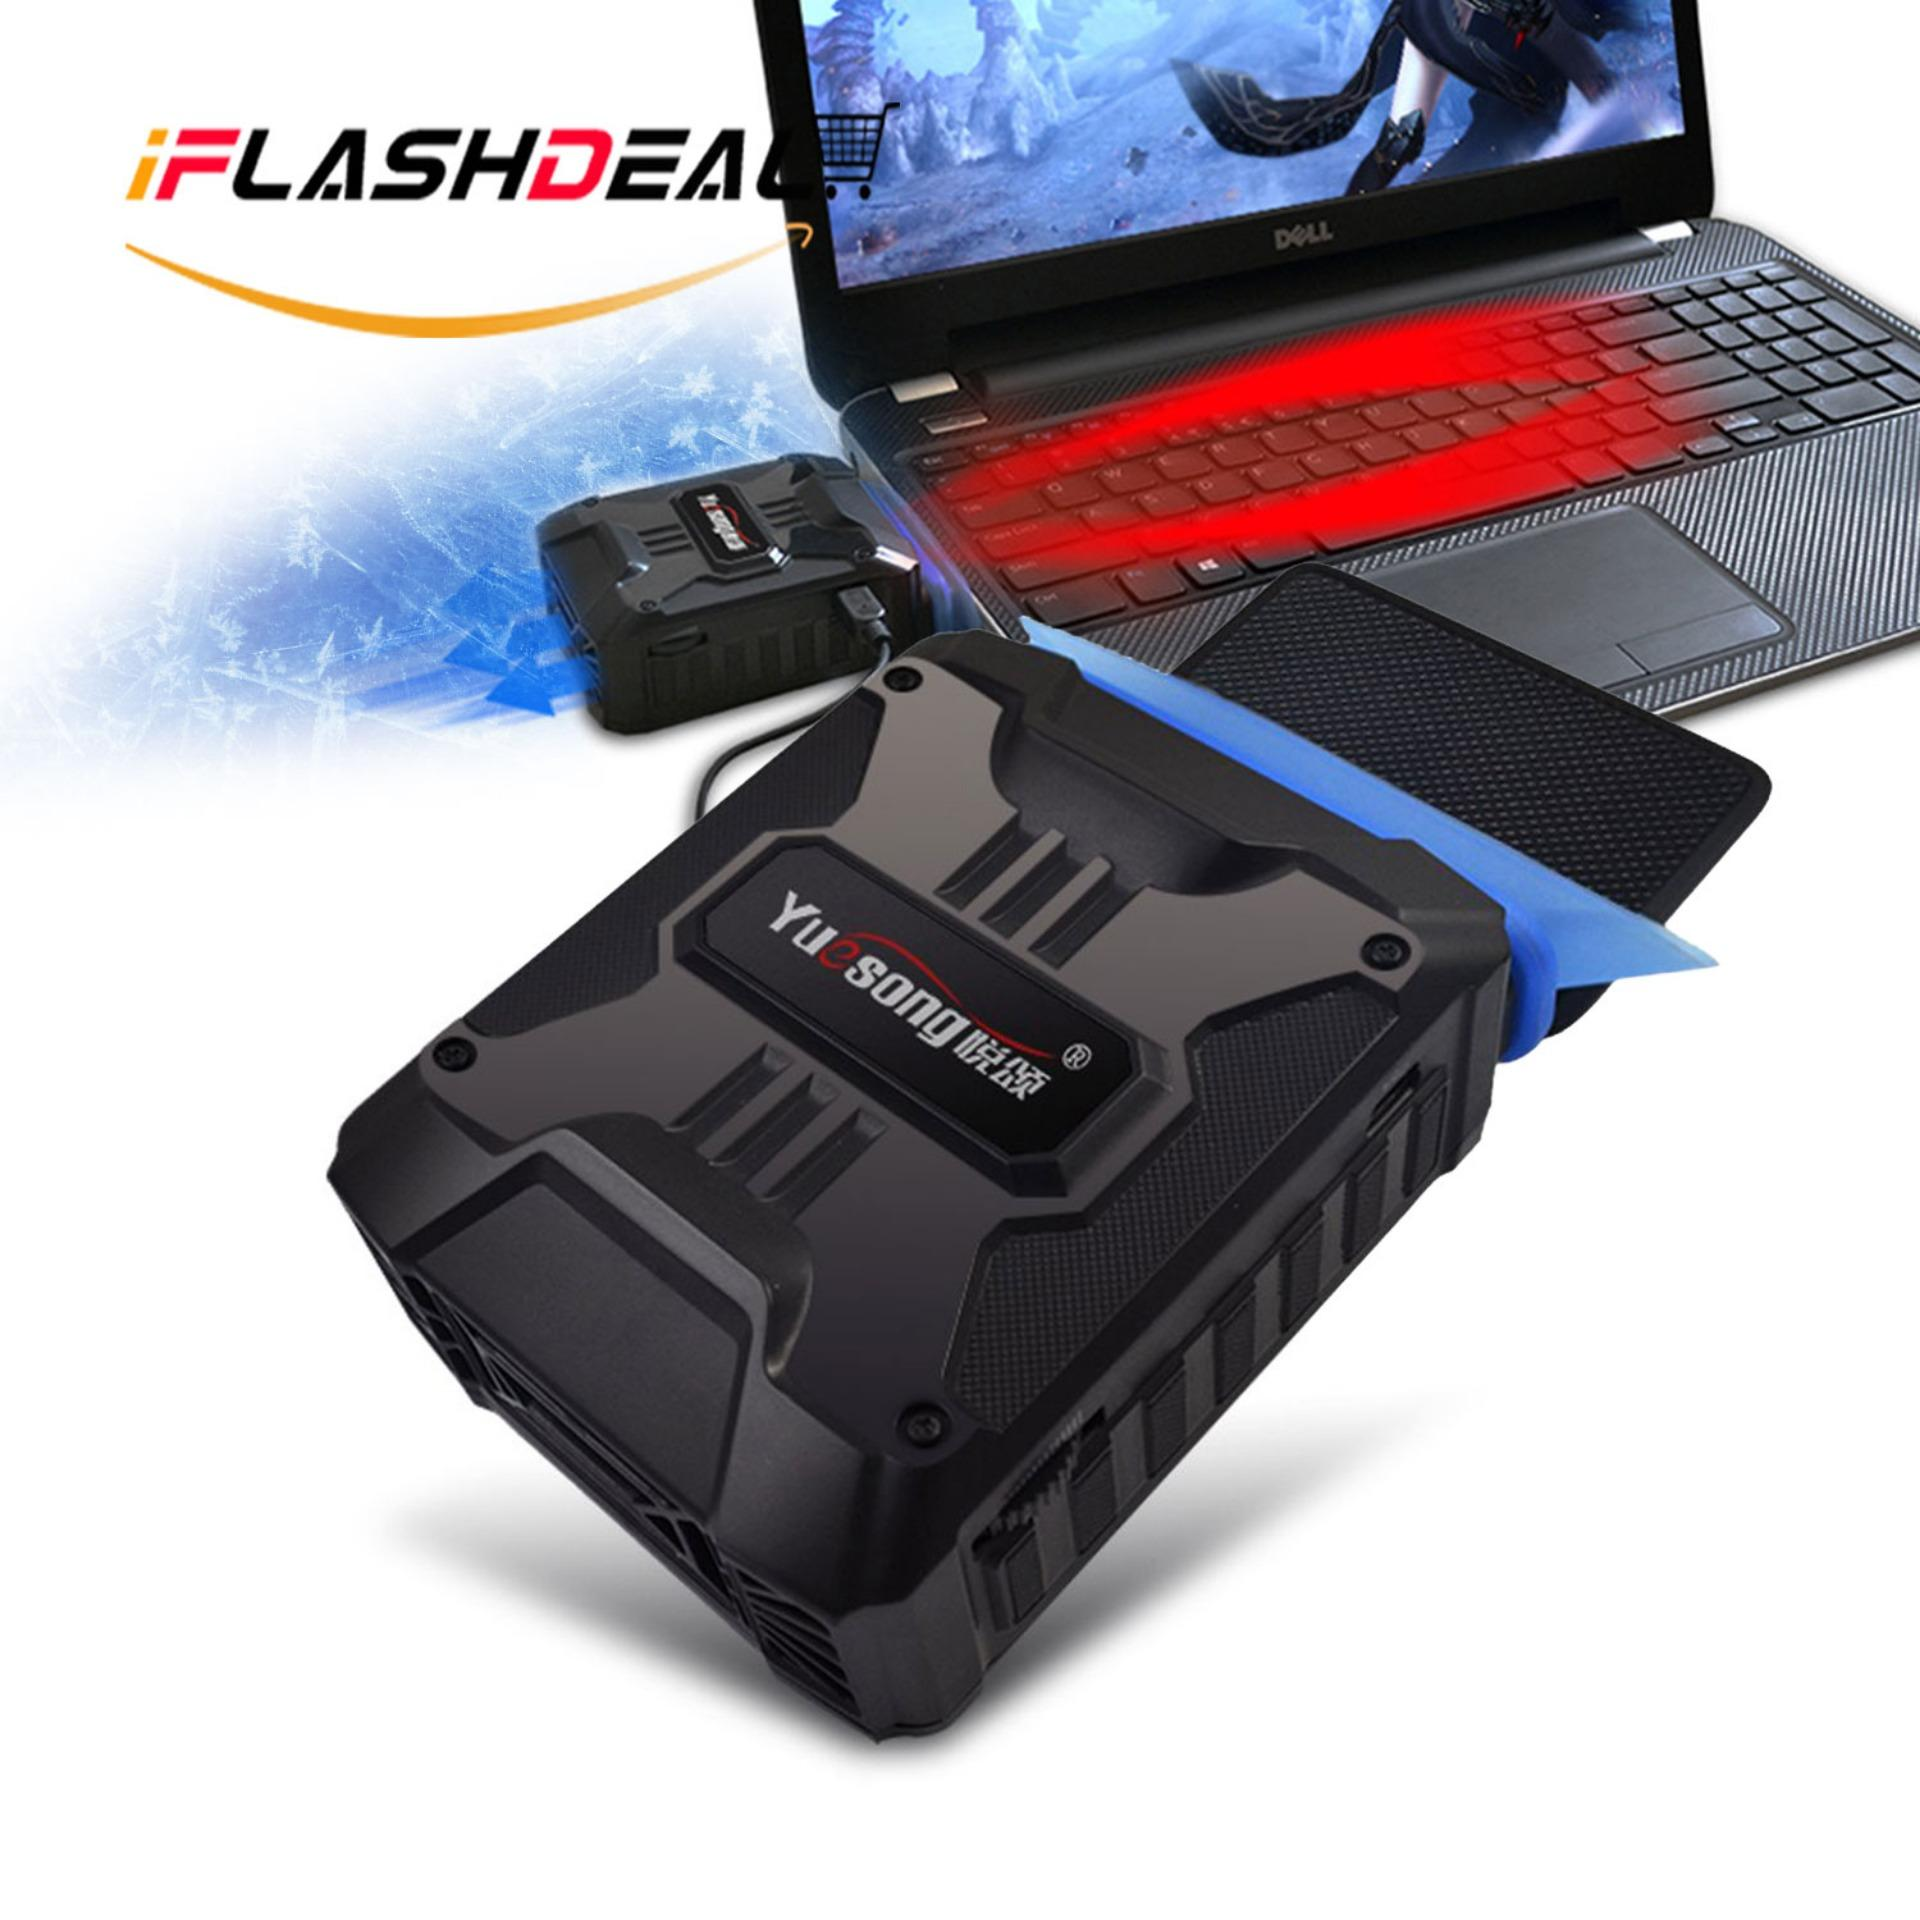 iFlashDeal Laptop Cooling Fan Laptop Cooler USB Portable Cooling Fan for Laptop Cooler Stand Laptop Vacuum Cooler Laptop Air Cooler for Notebook Laptop